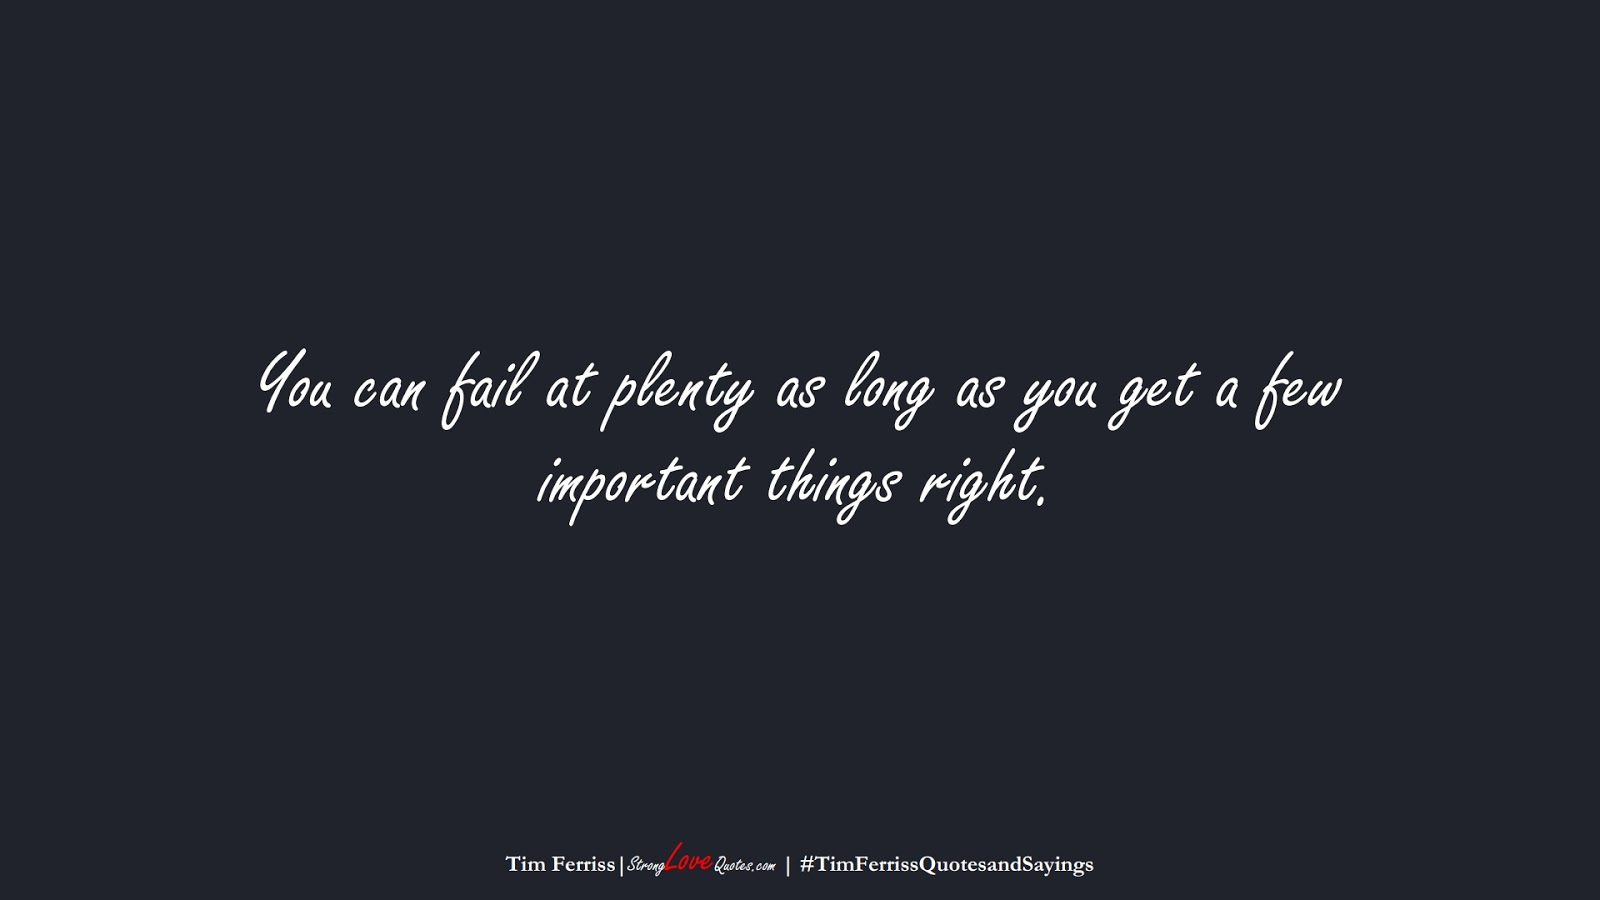 You can fail at plenty as long as you get a few important things right. (Tim Ferriss);  #TimFerrissQuotesandSayings